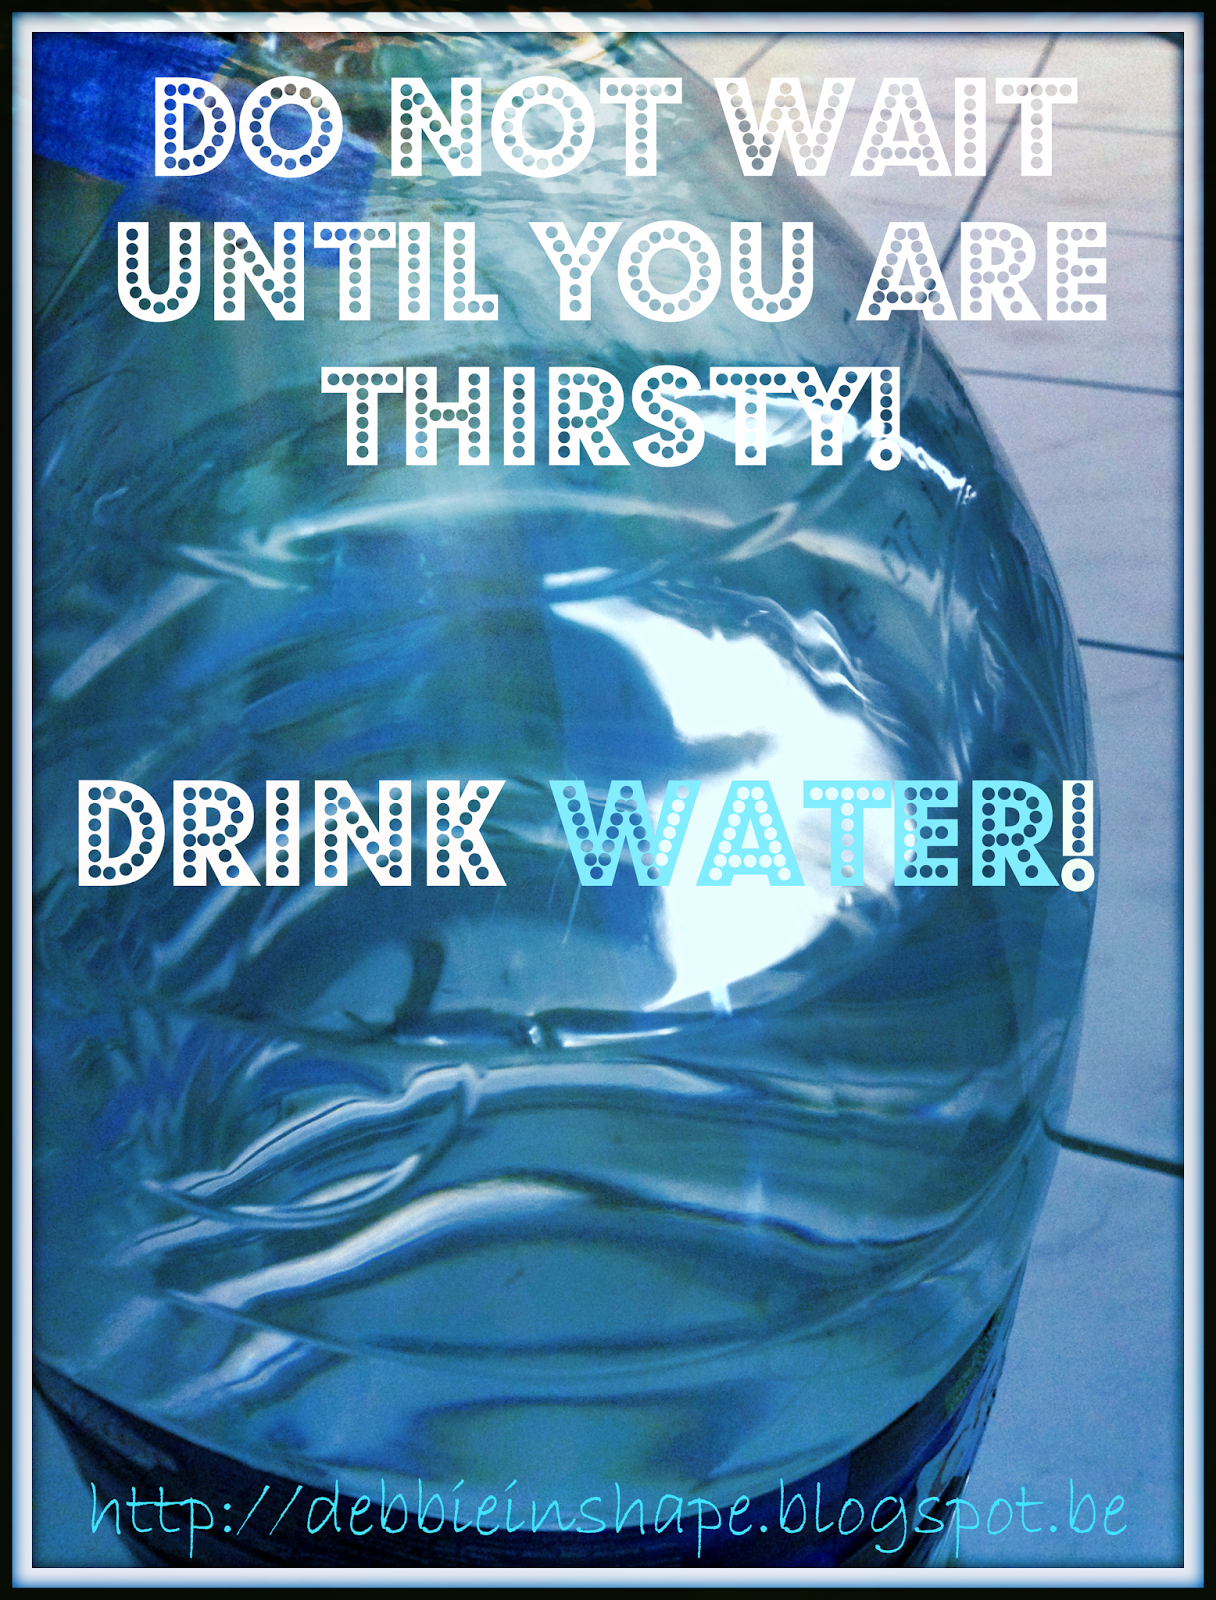 Don't want wait until you are thirsty. Drink water now.